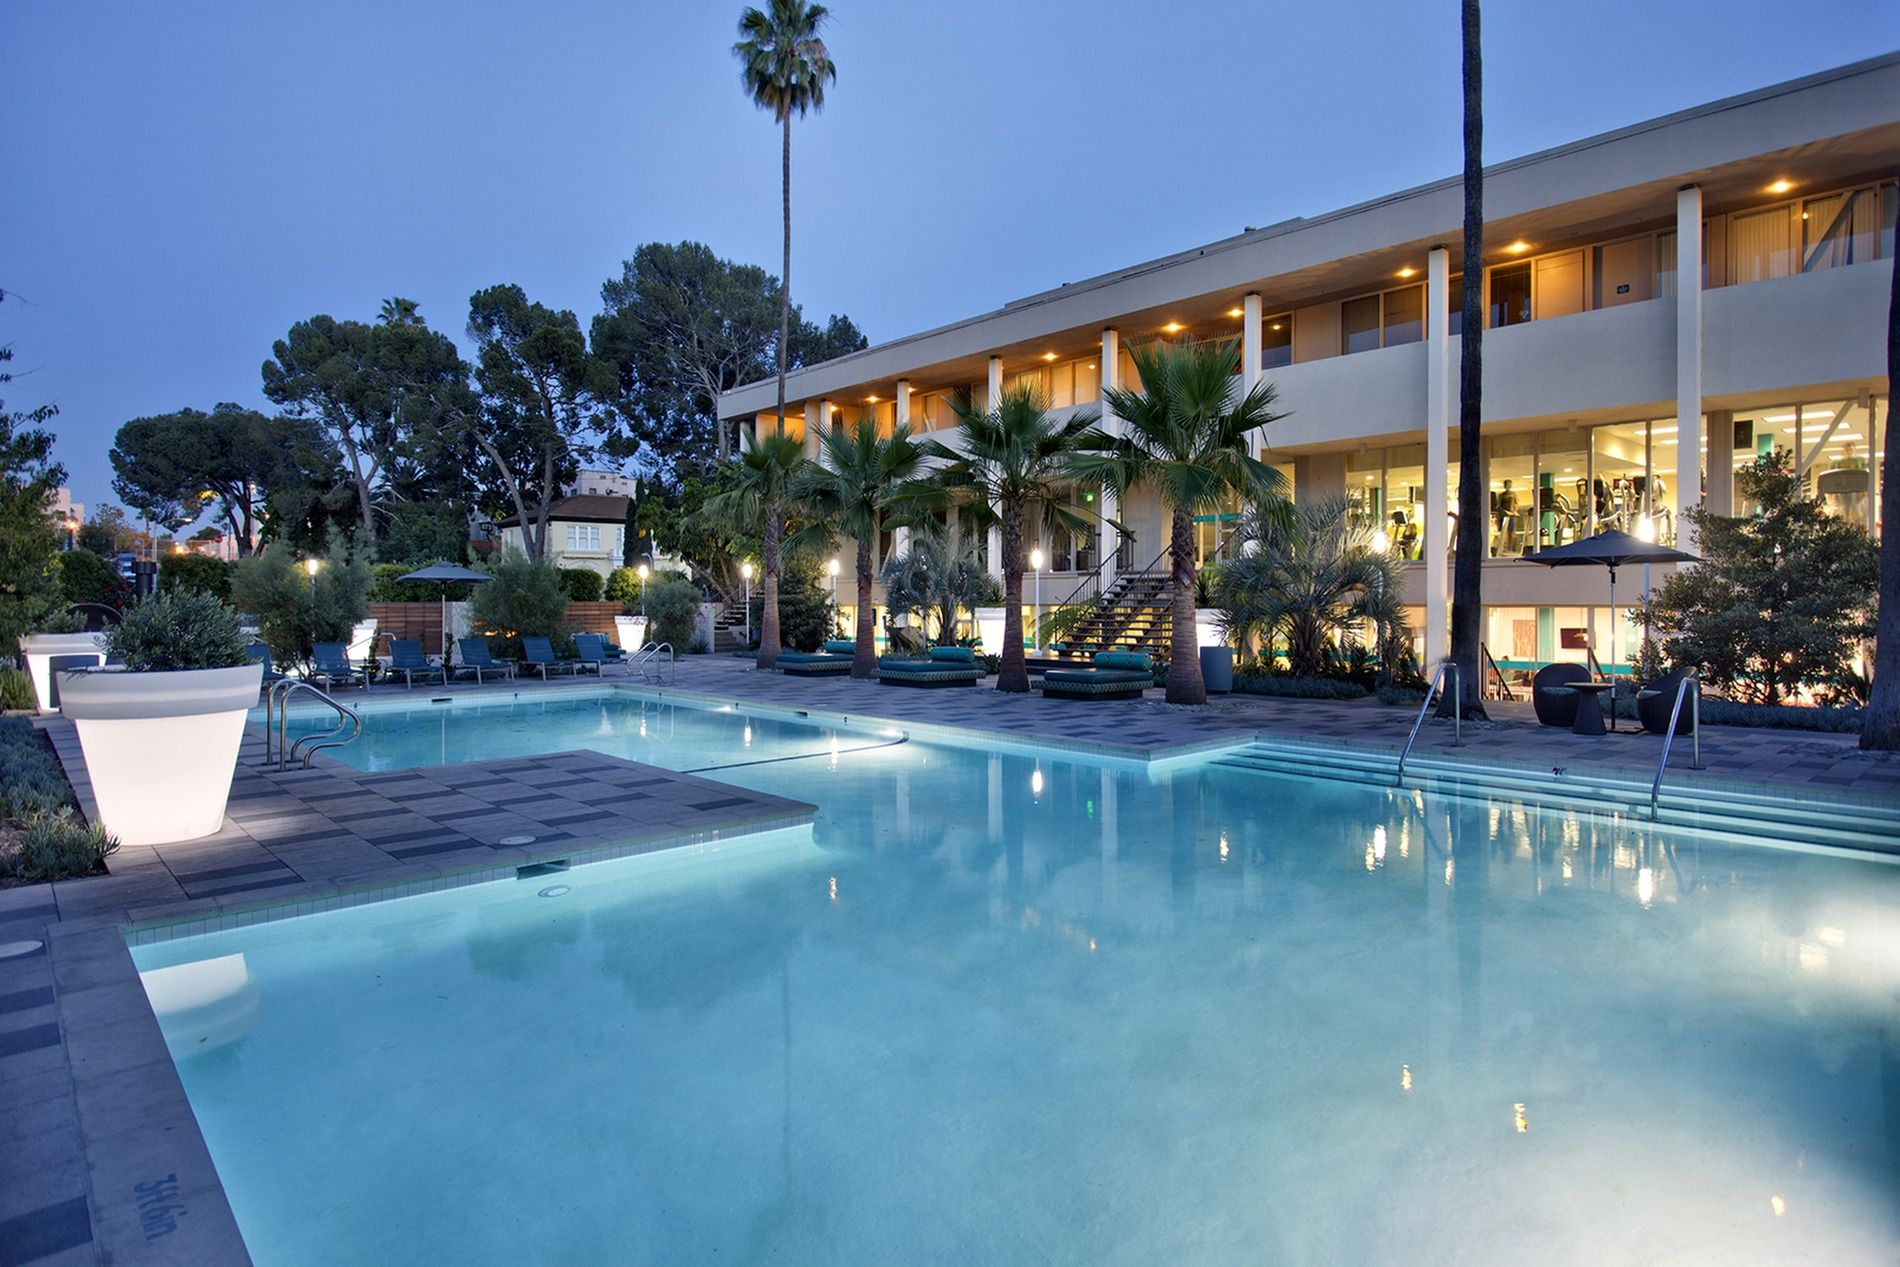 Resort Style Swimming Pool At The Chadwick Apartments In Koreatown Los Angeles Los Angeles Apartments Koreatown Los Angeles Apartments For Rent